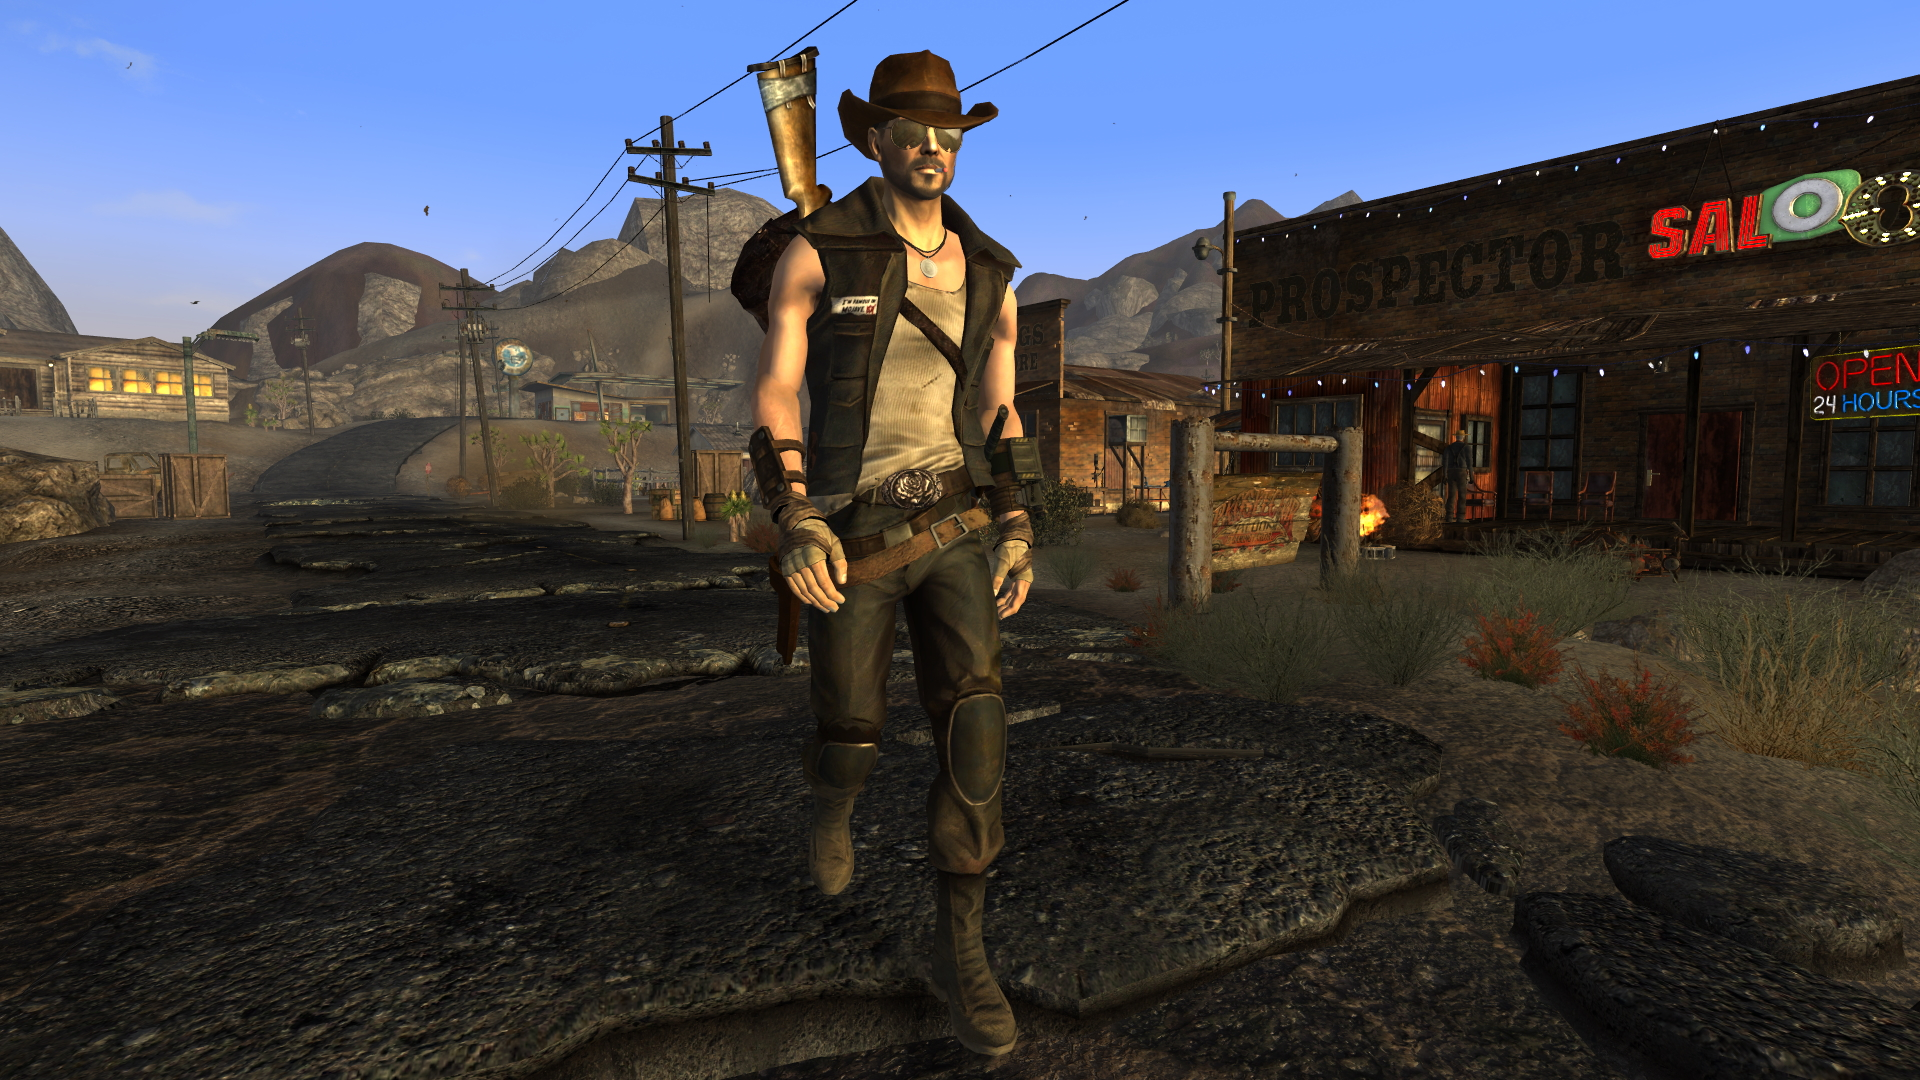 NCR Securitrons at Fallout New Vegas - mods and community